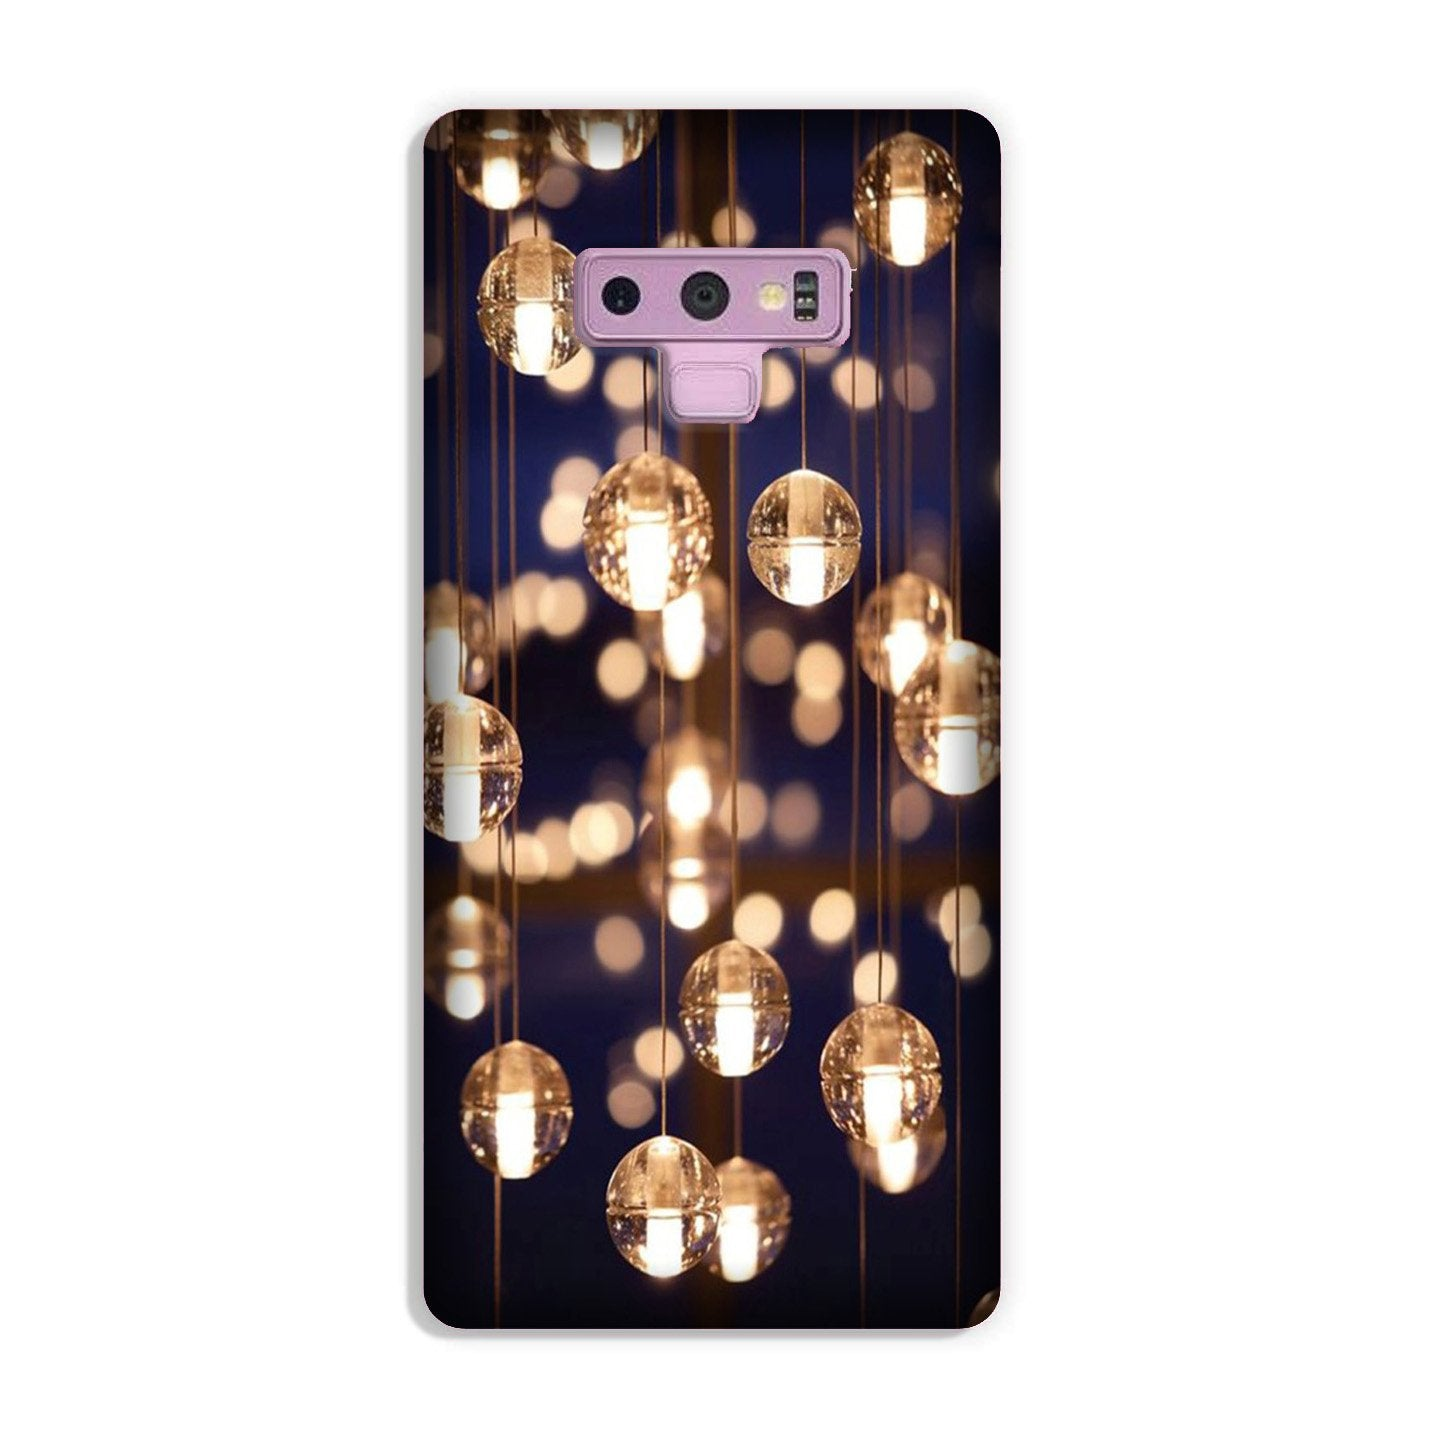 Party Bulb2 Case for Galaxy Note 9